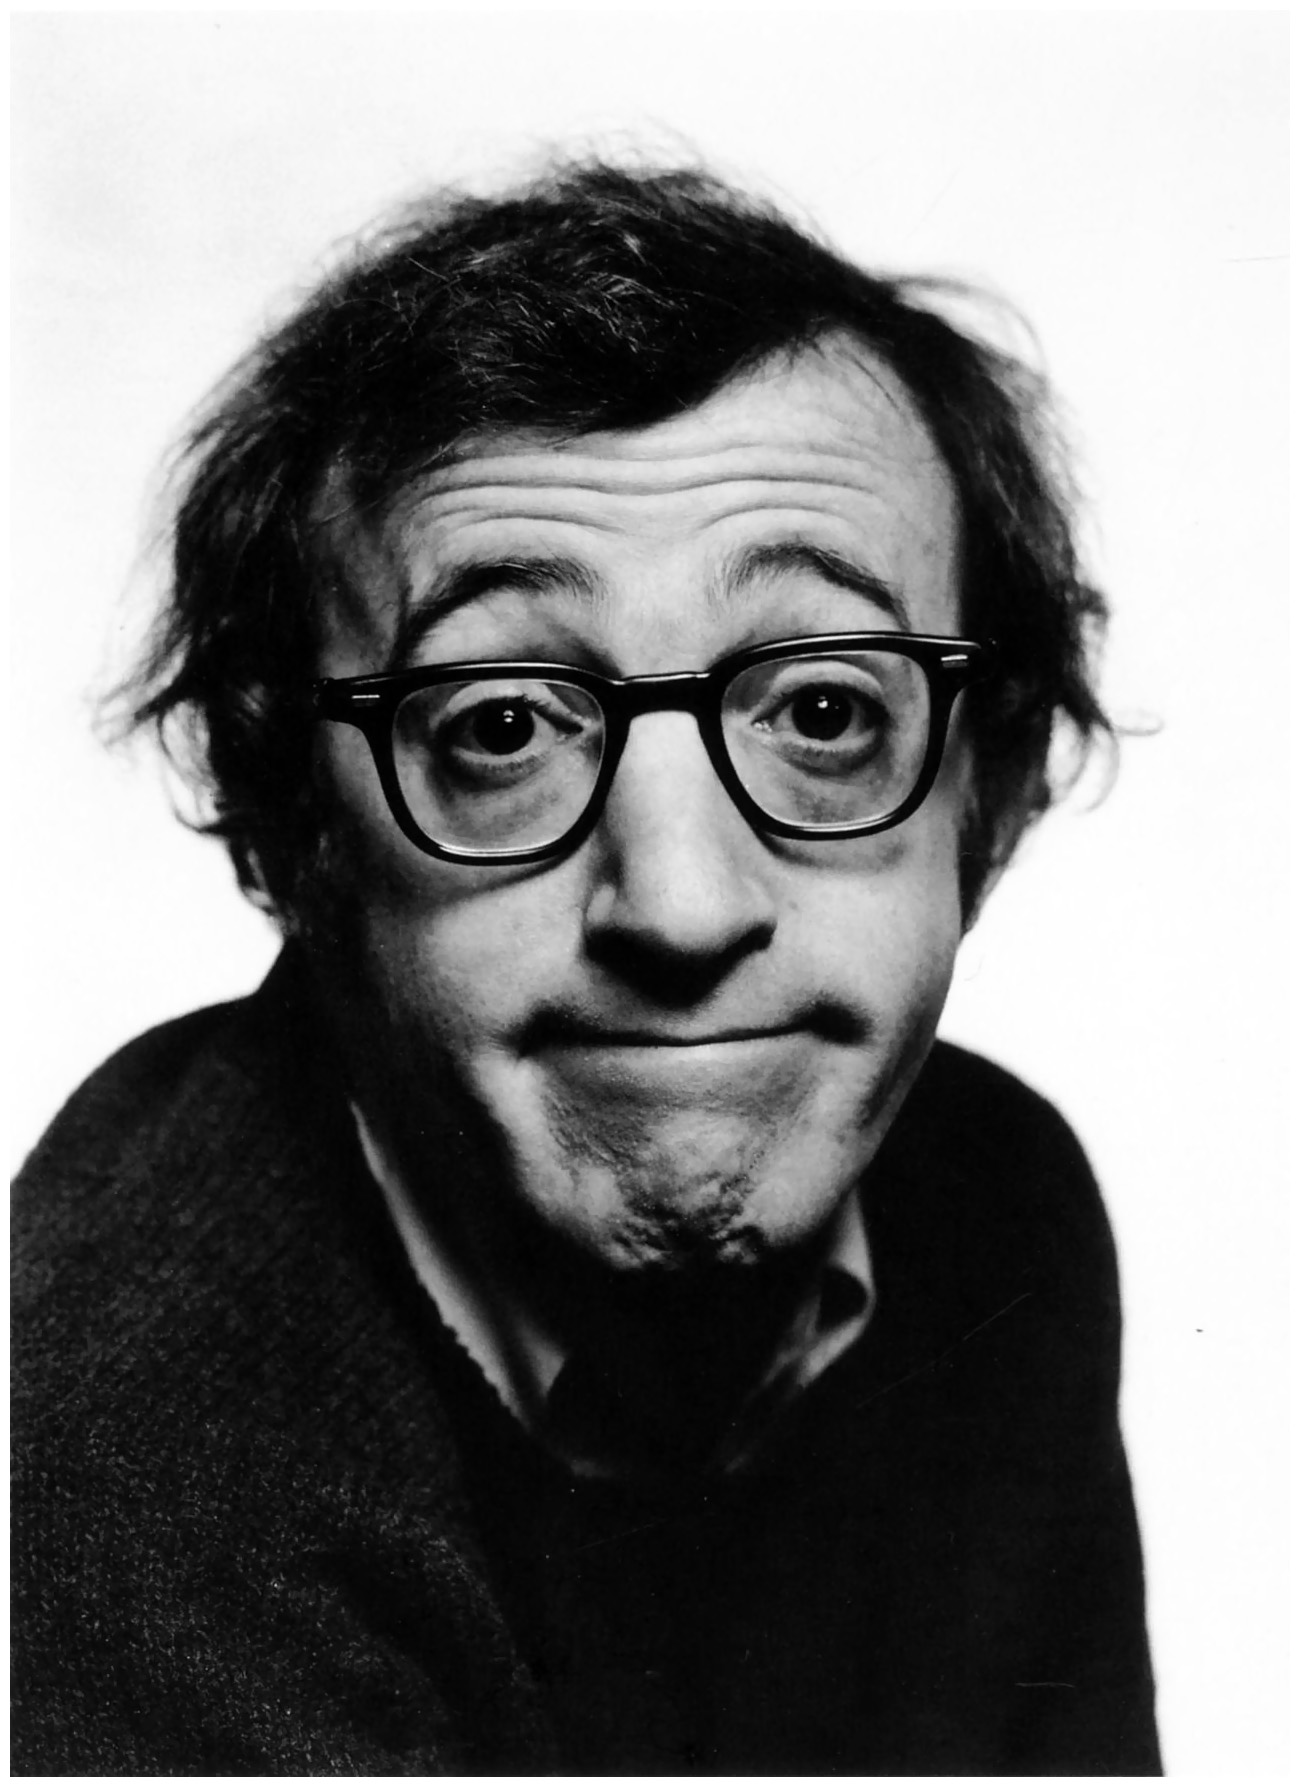 woody allen younger.jpg